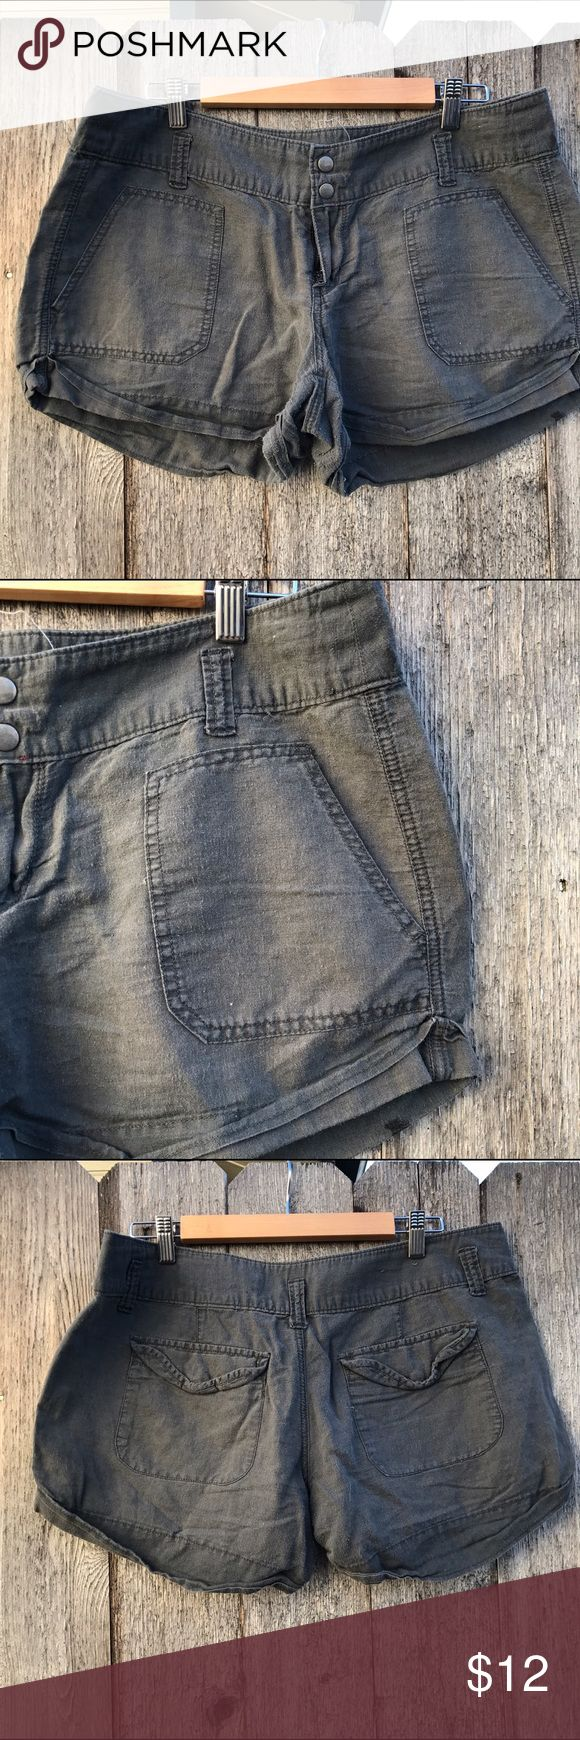 Comfortable Gray Shorts Comfortable gray / charcoal shorts. These are great addition to any closet Converse Shorts